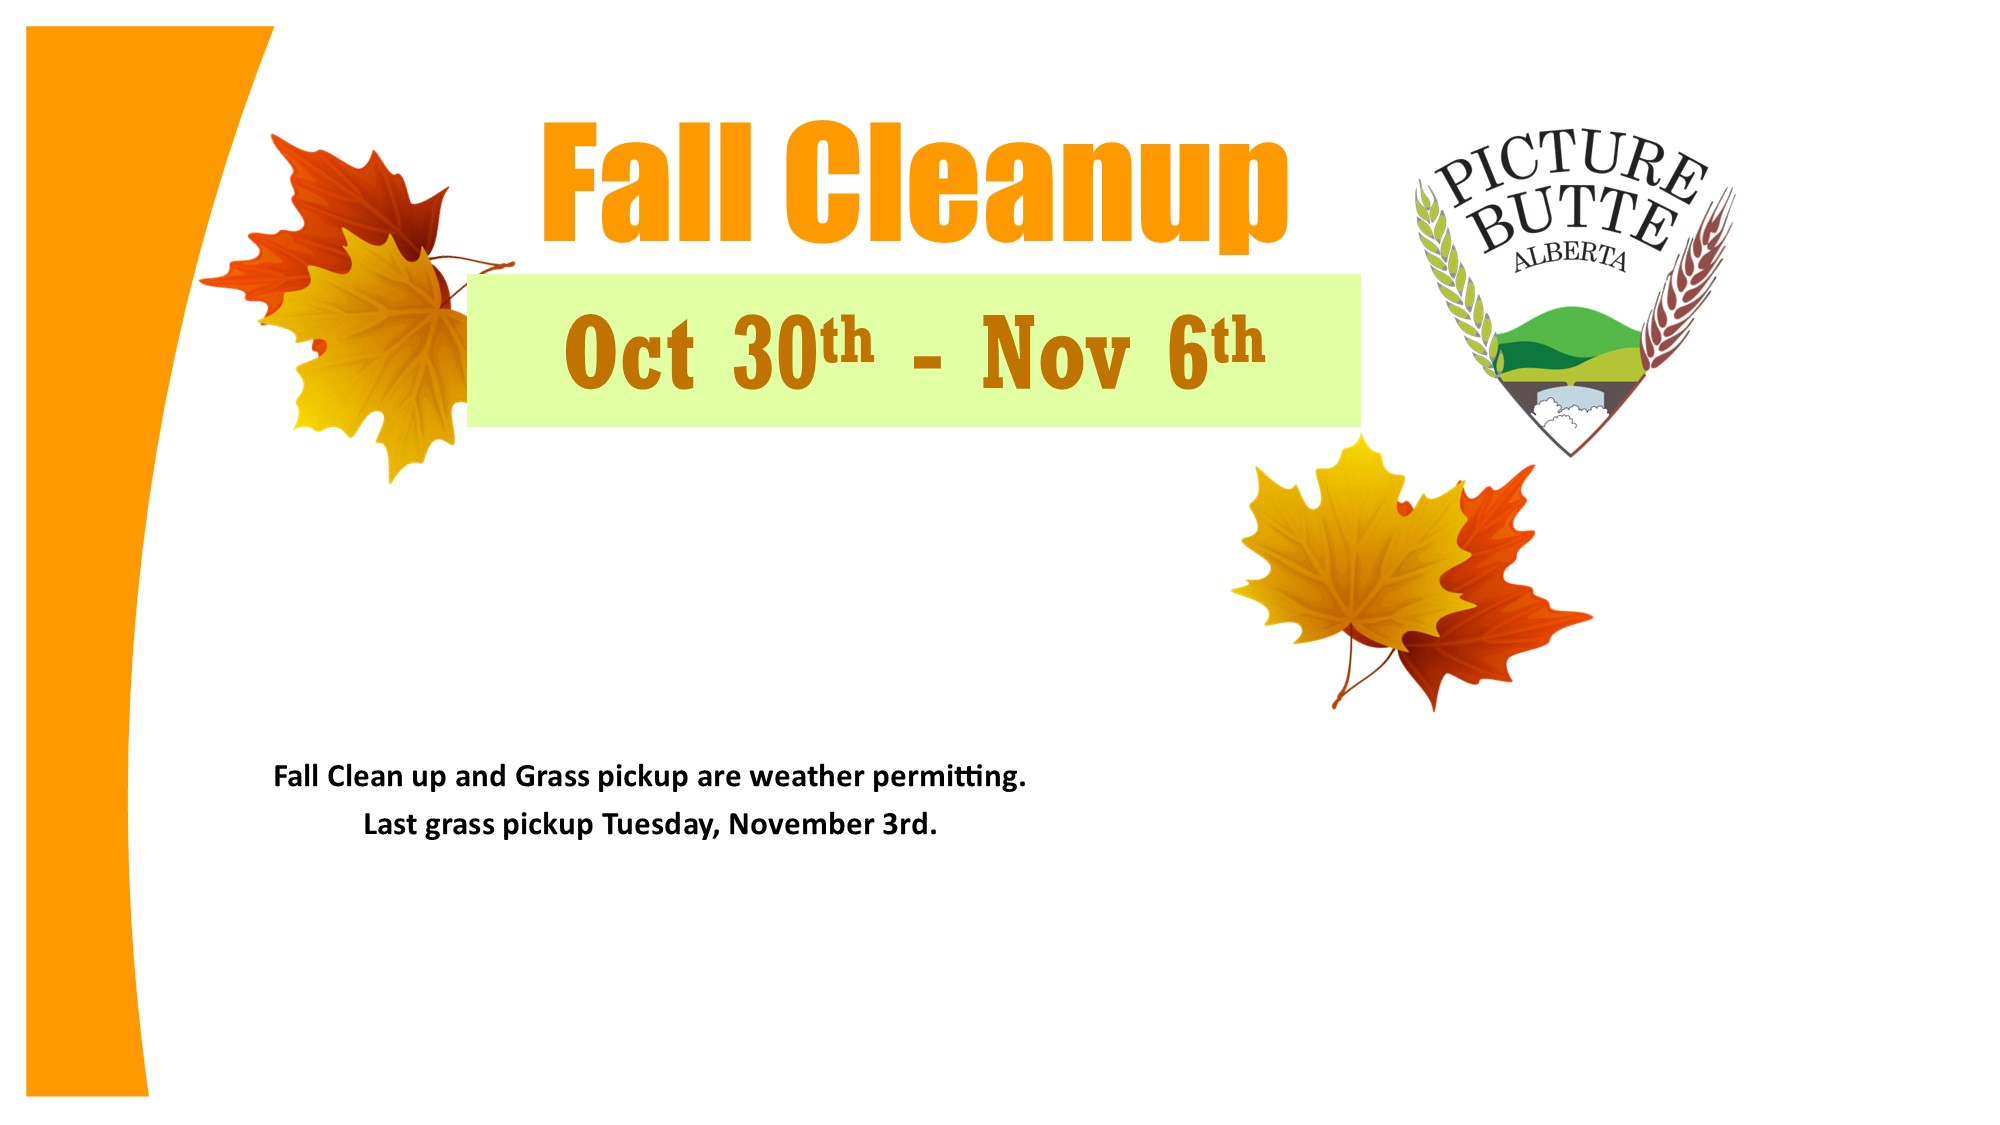 <div id=slideshow_title>Fall Cleanup</div> <br>Materials of disposal should be placed in the alley or garbage pickup area by 8:00 a.m. on Friday, October 30th for removal by Public Works. These items should be neatly stacked and bundled where possible.